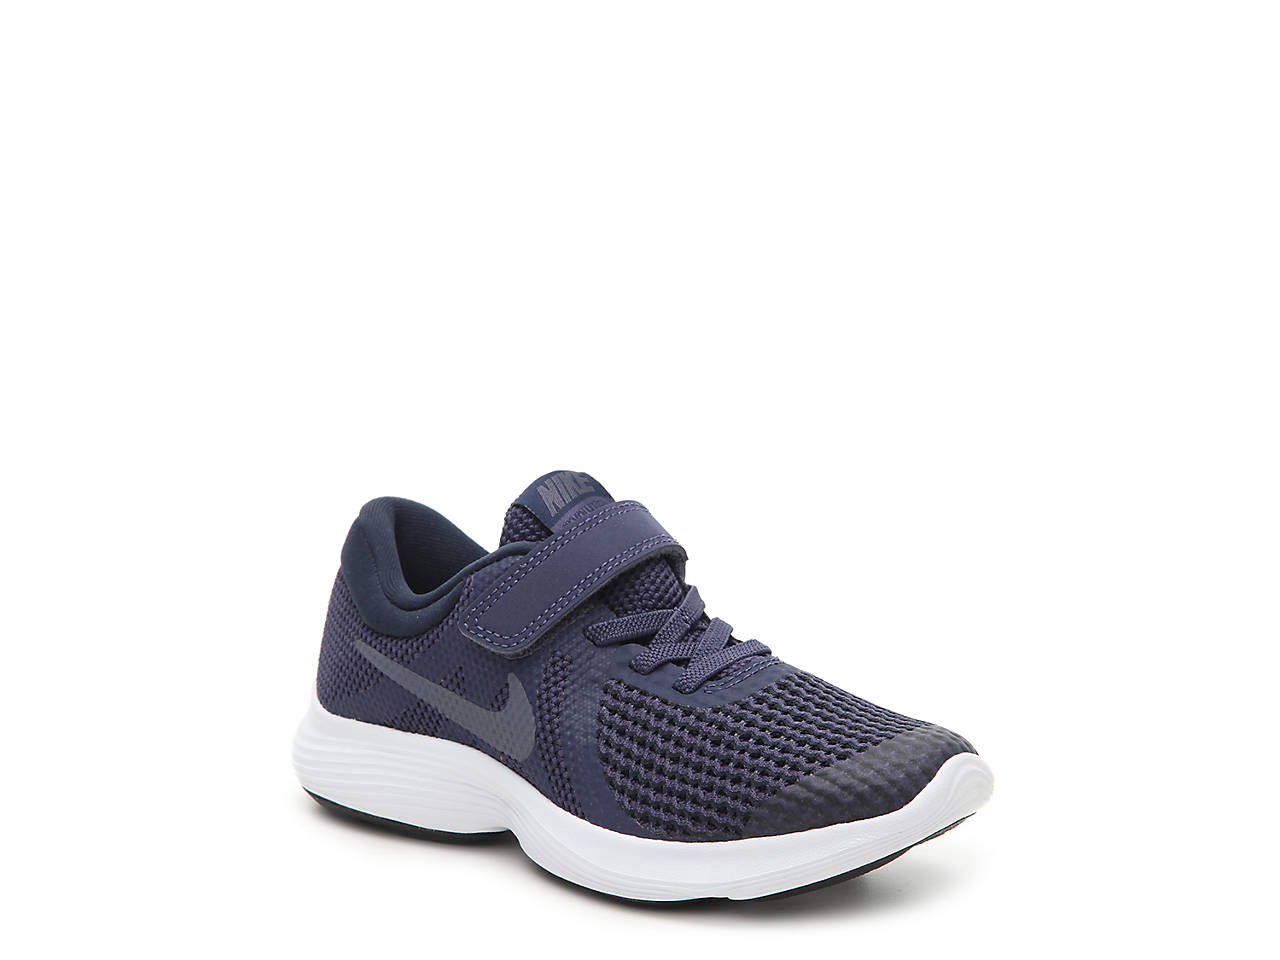 5fdef1428e9 Nike Revolution 4 Toddler   Youth Running Shoe Kids Shoes